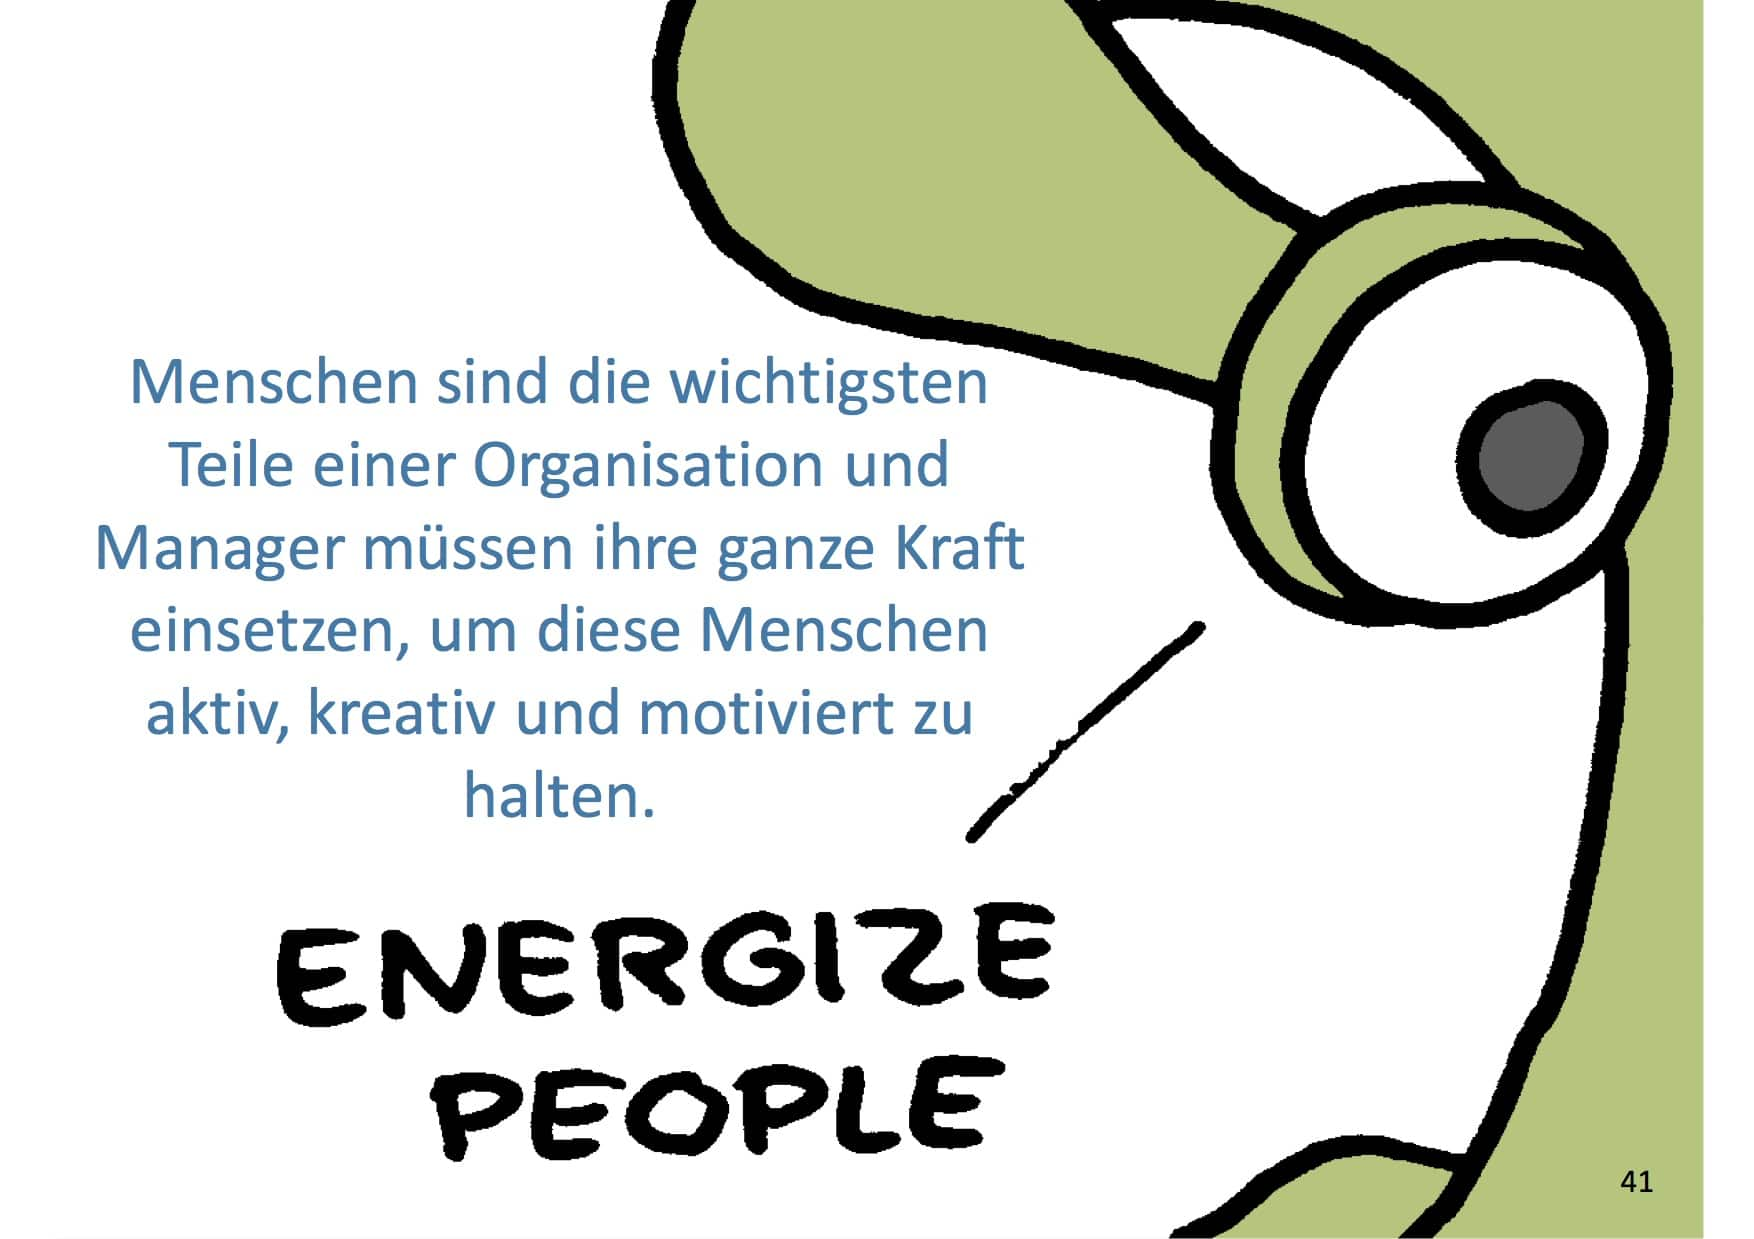 Management 3.0 Energize People